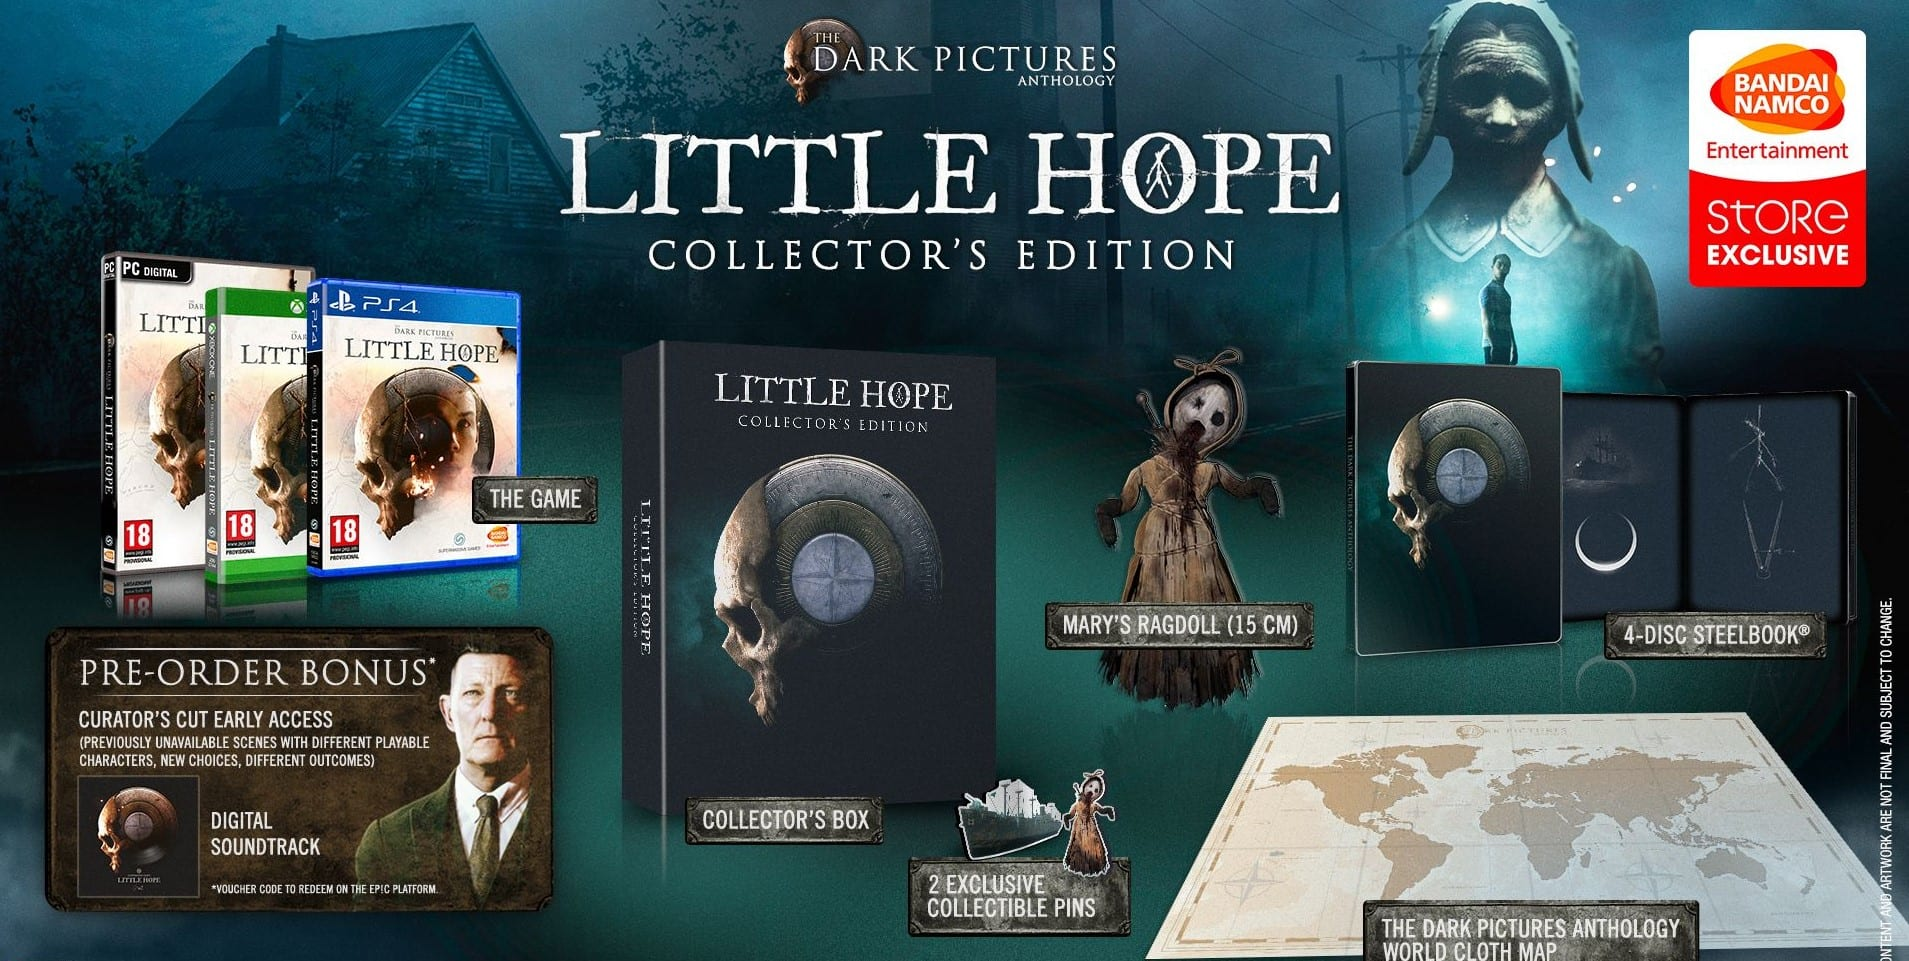 The Dark Pictures Anthology Little Hope Collector's Edition